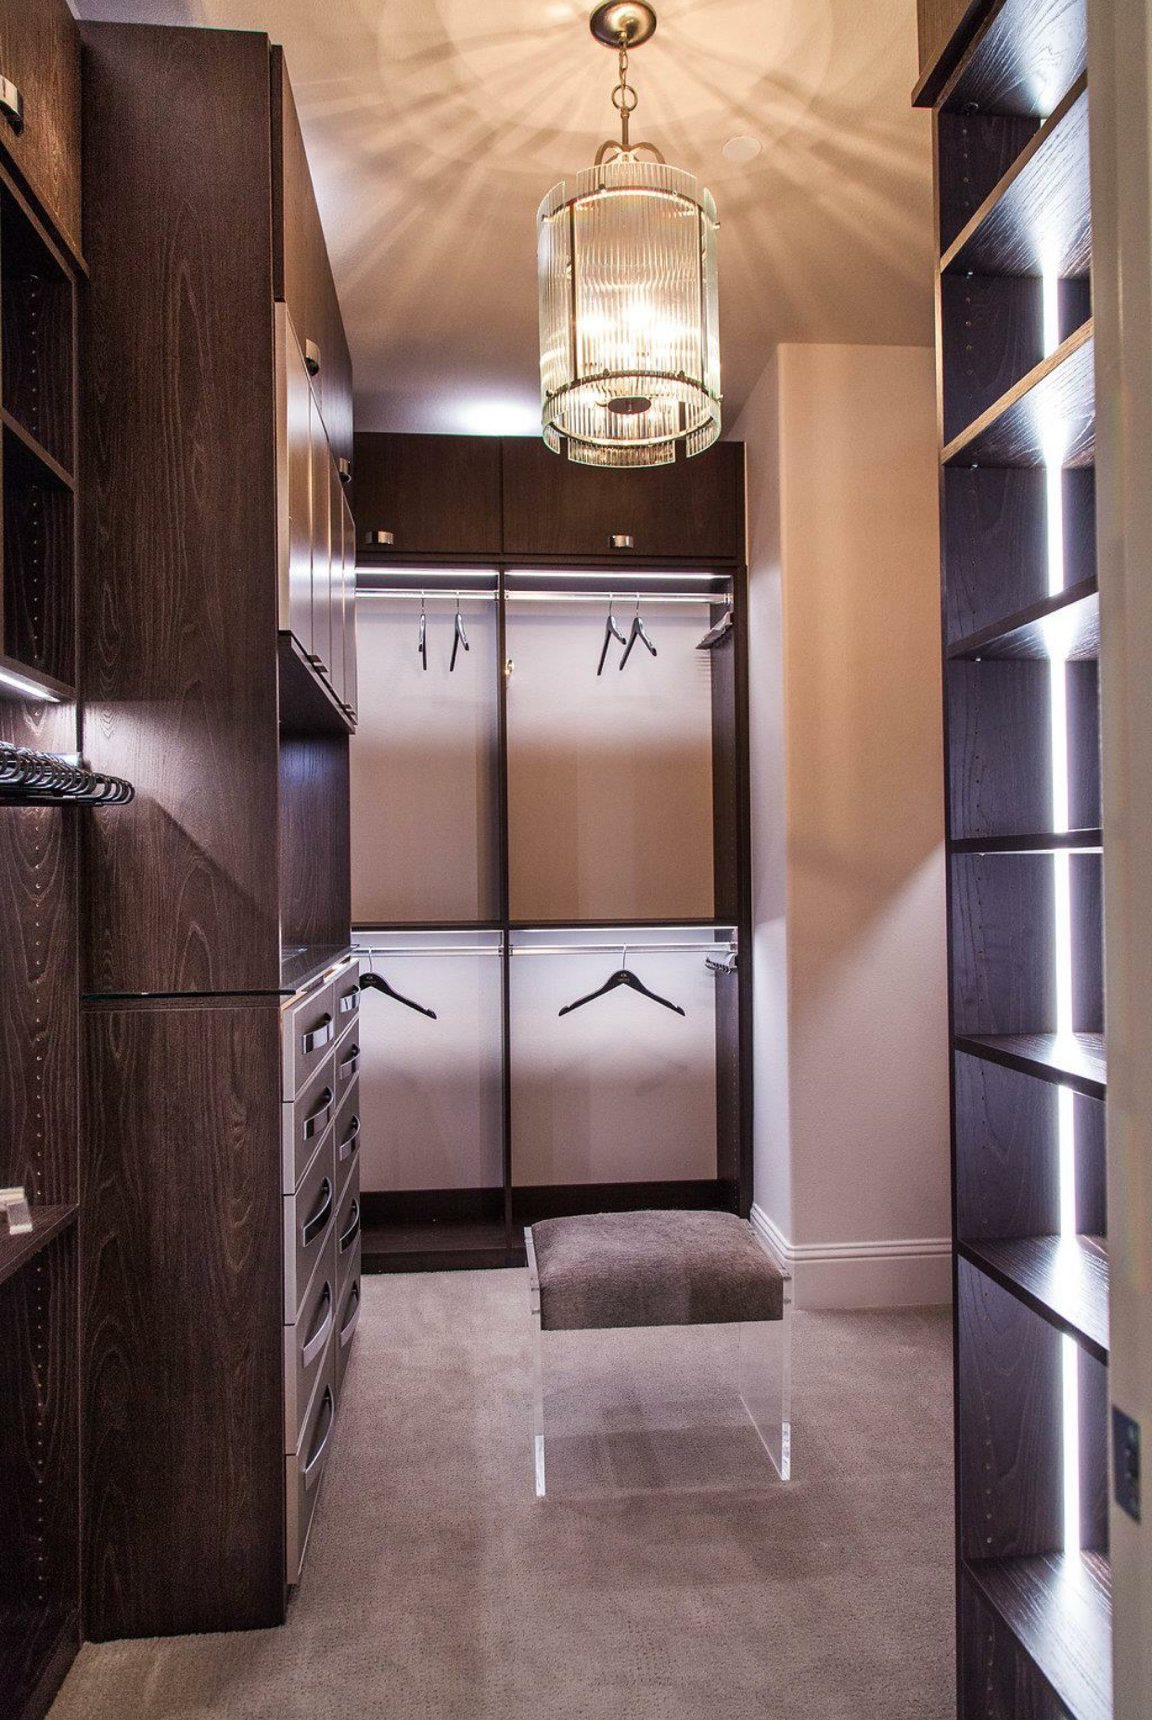 We were so excited to create custom his and hers closets for this Booth Brothers model home. These designs are all about elegance for guys and gals. #designyourhappyplace #closetenvy #closetgoals